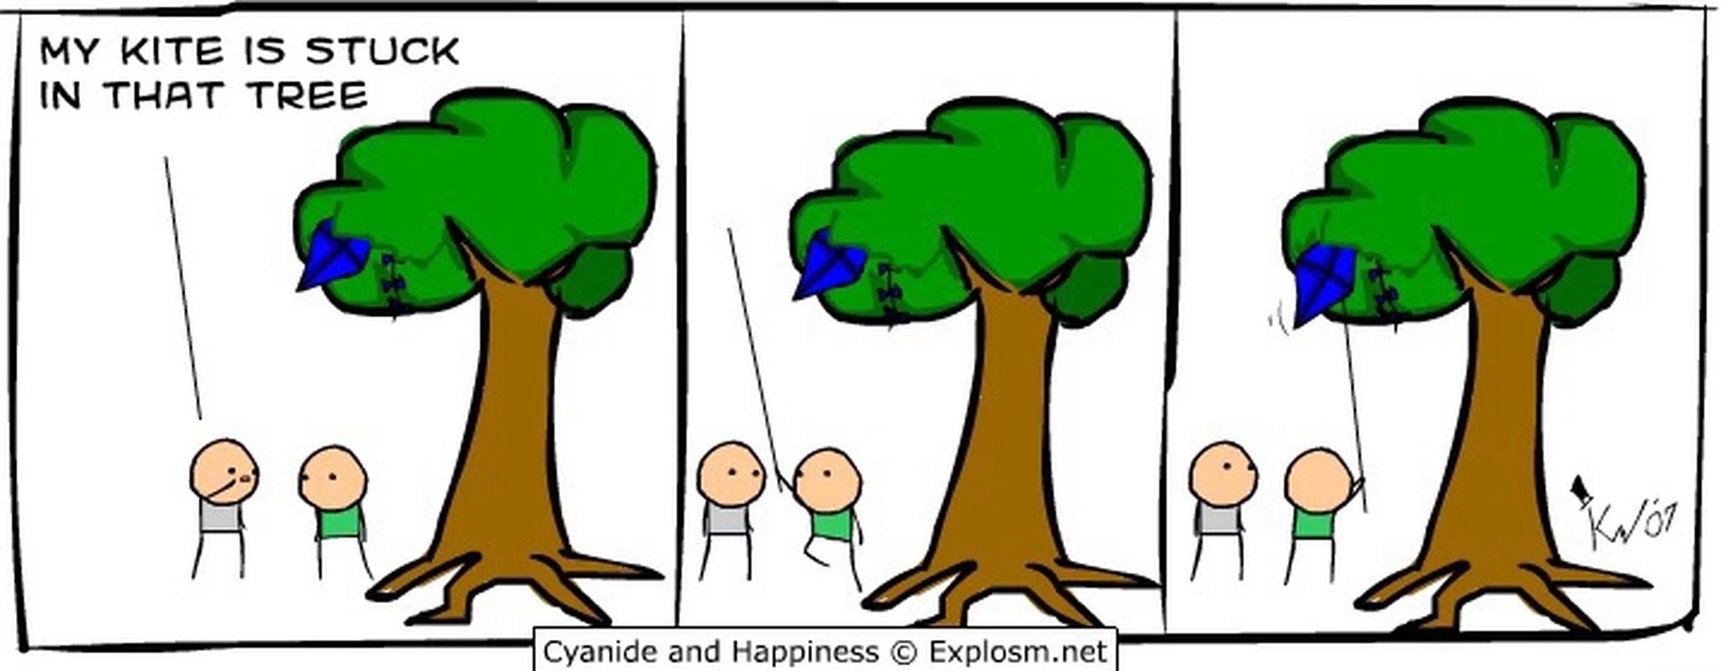 I love cyanide and happiness - meme